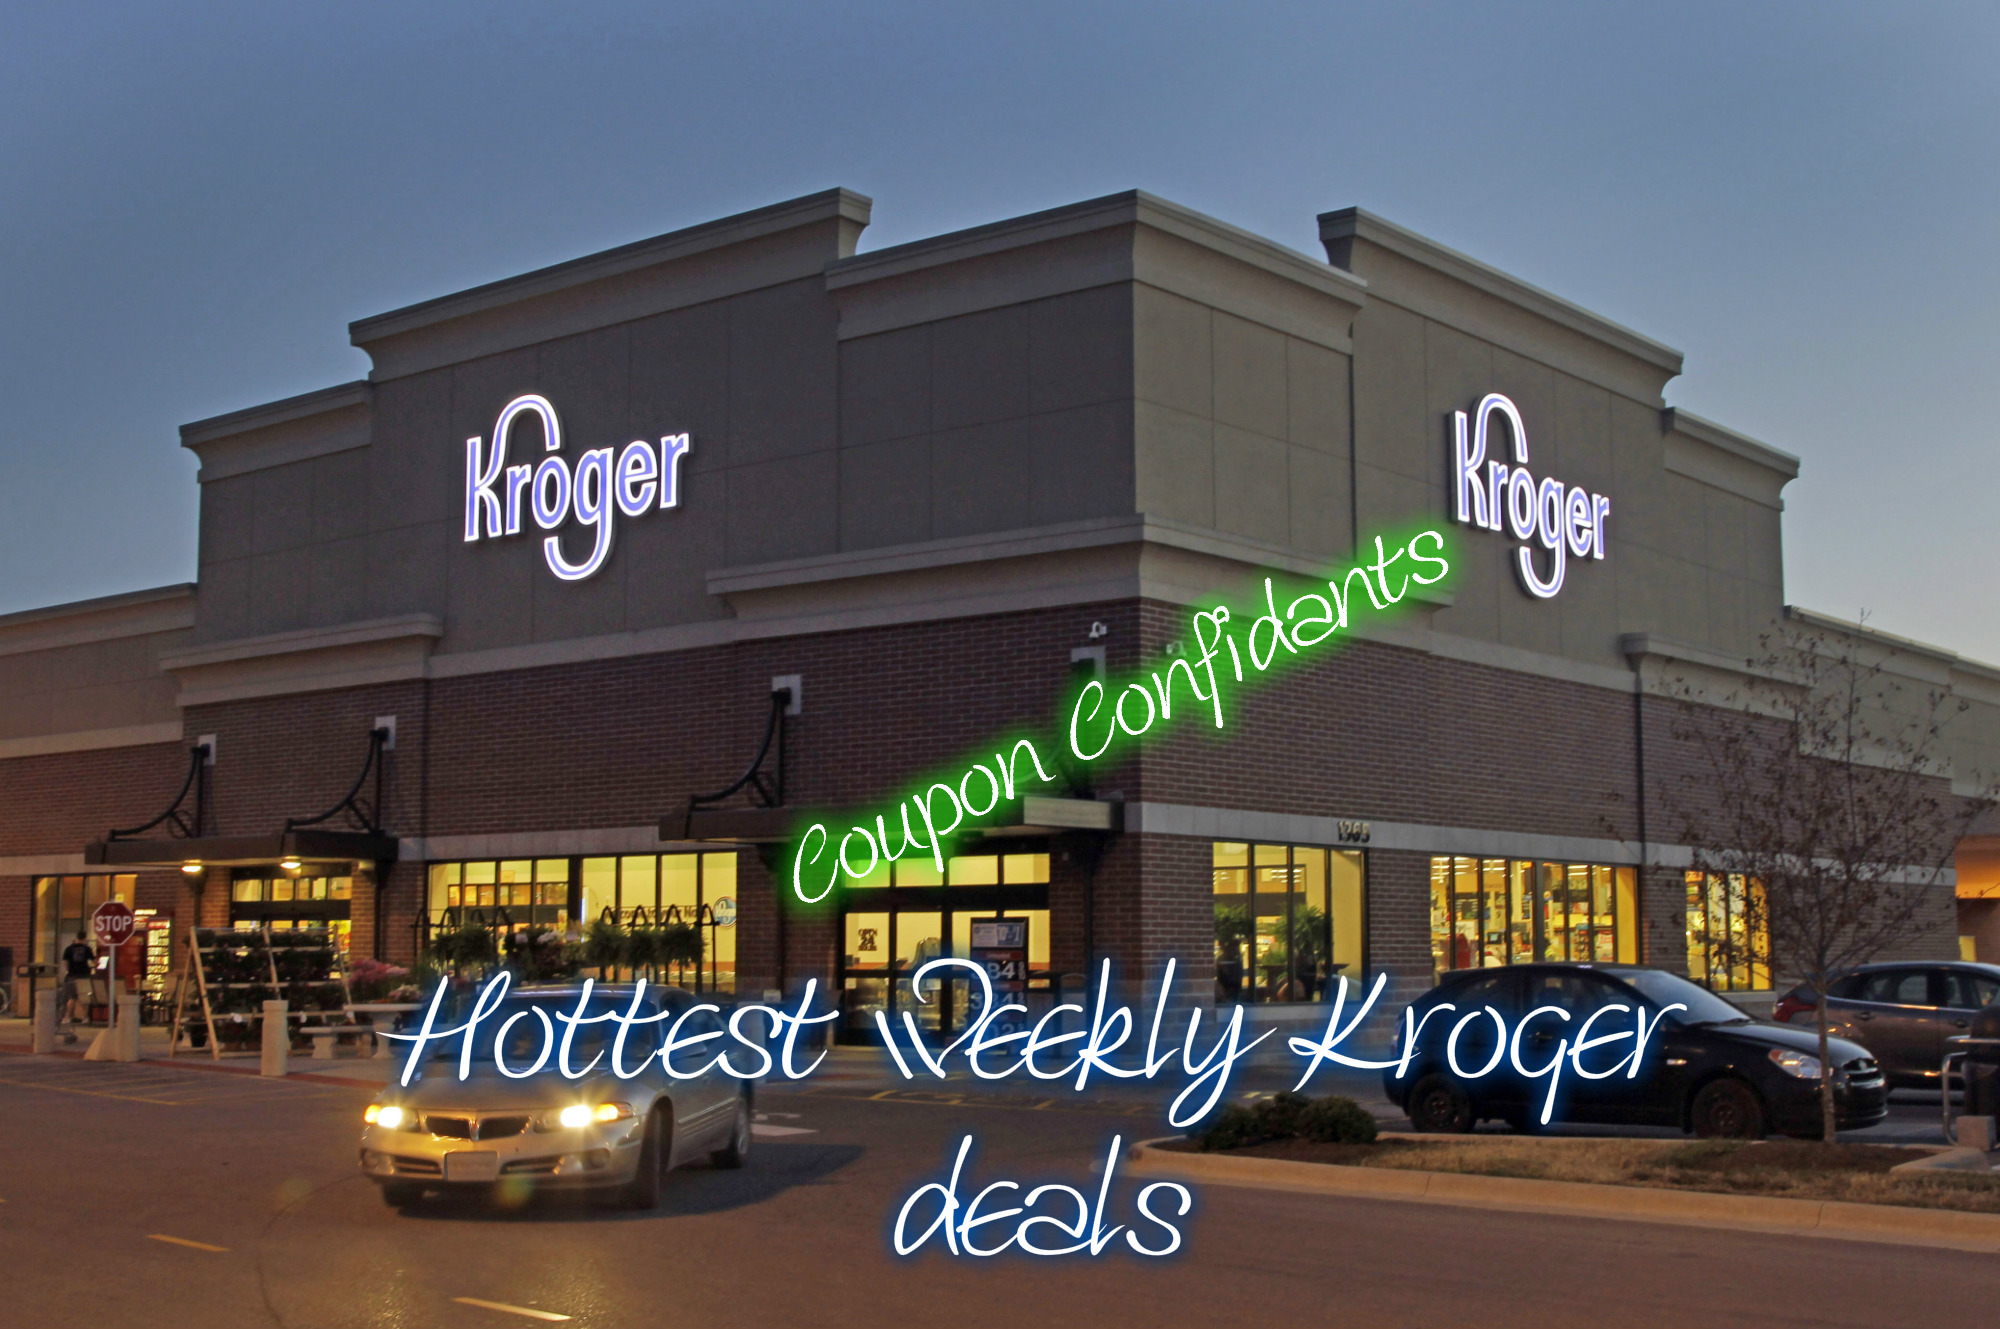 Kroger - Nov 29 - Dec 5 (Buy 4, Save $4 Sale!)